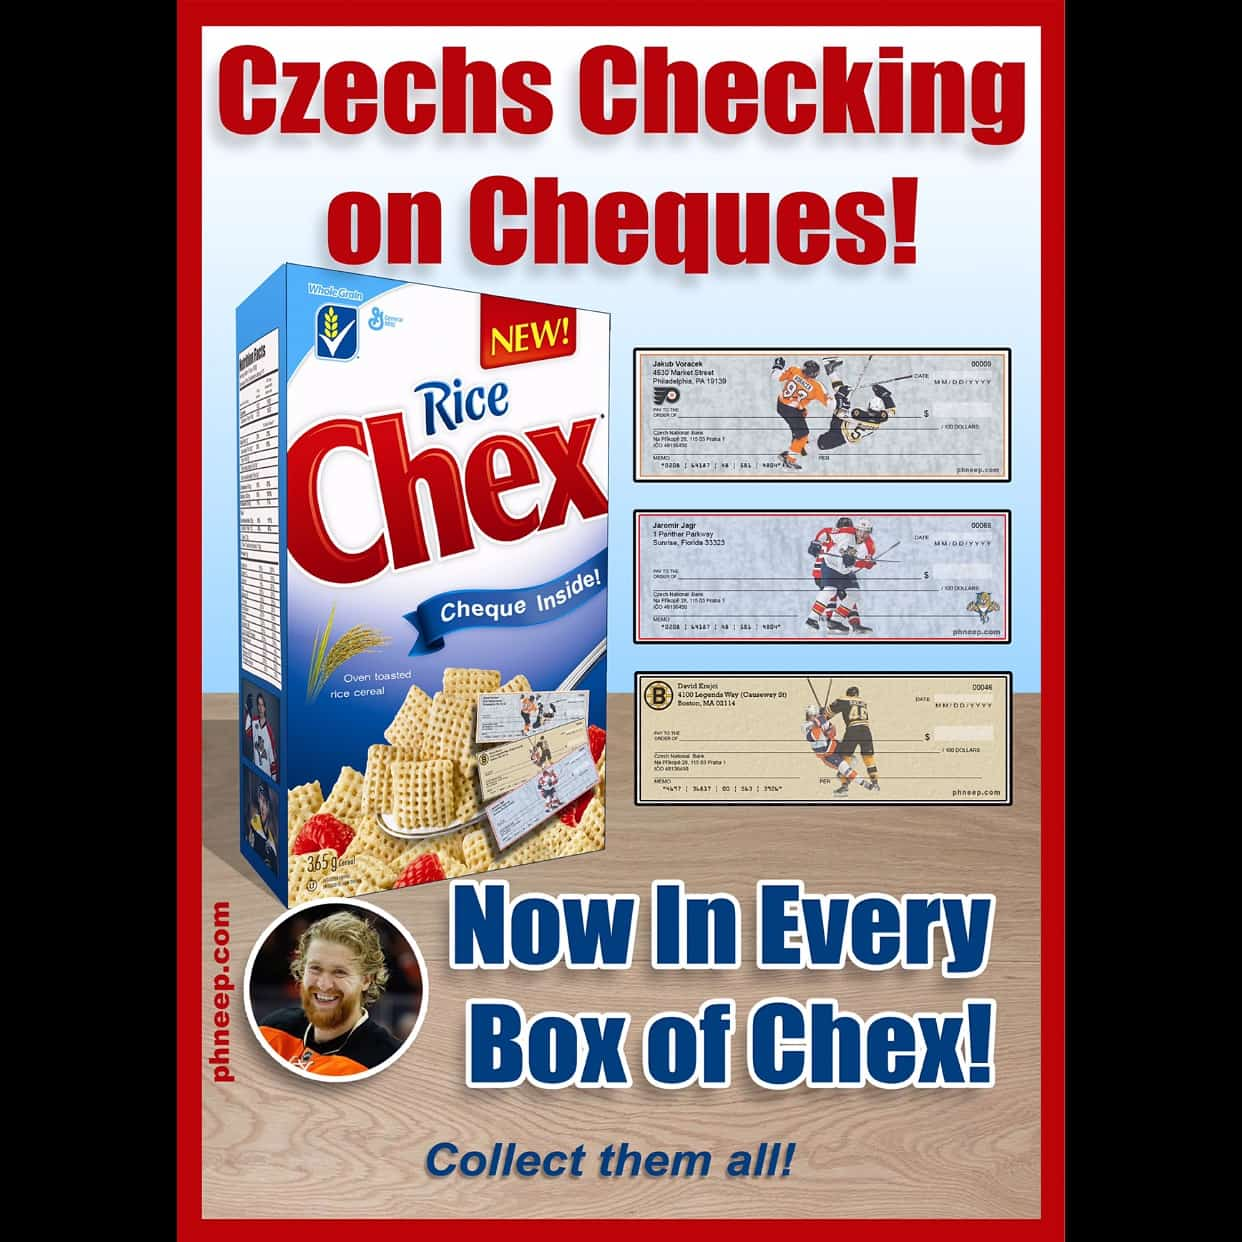 Check this out! #chex #czechs #checking #cheques